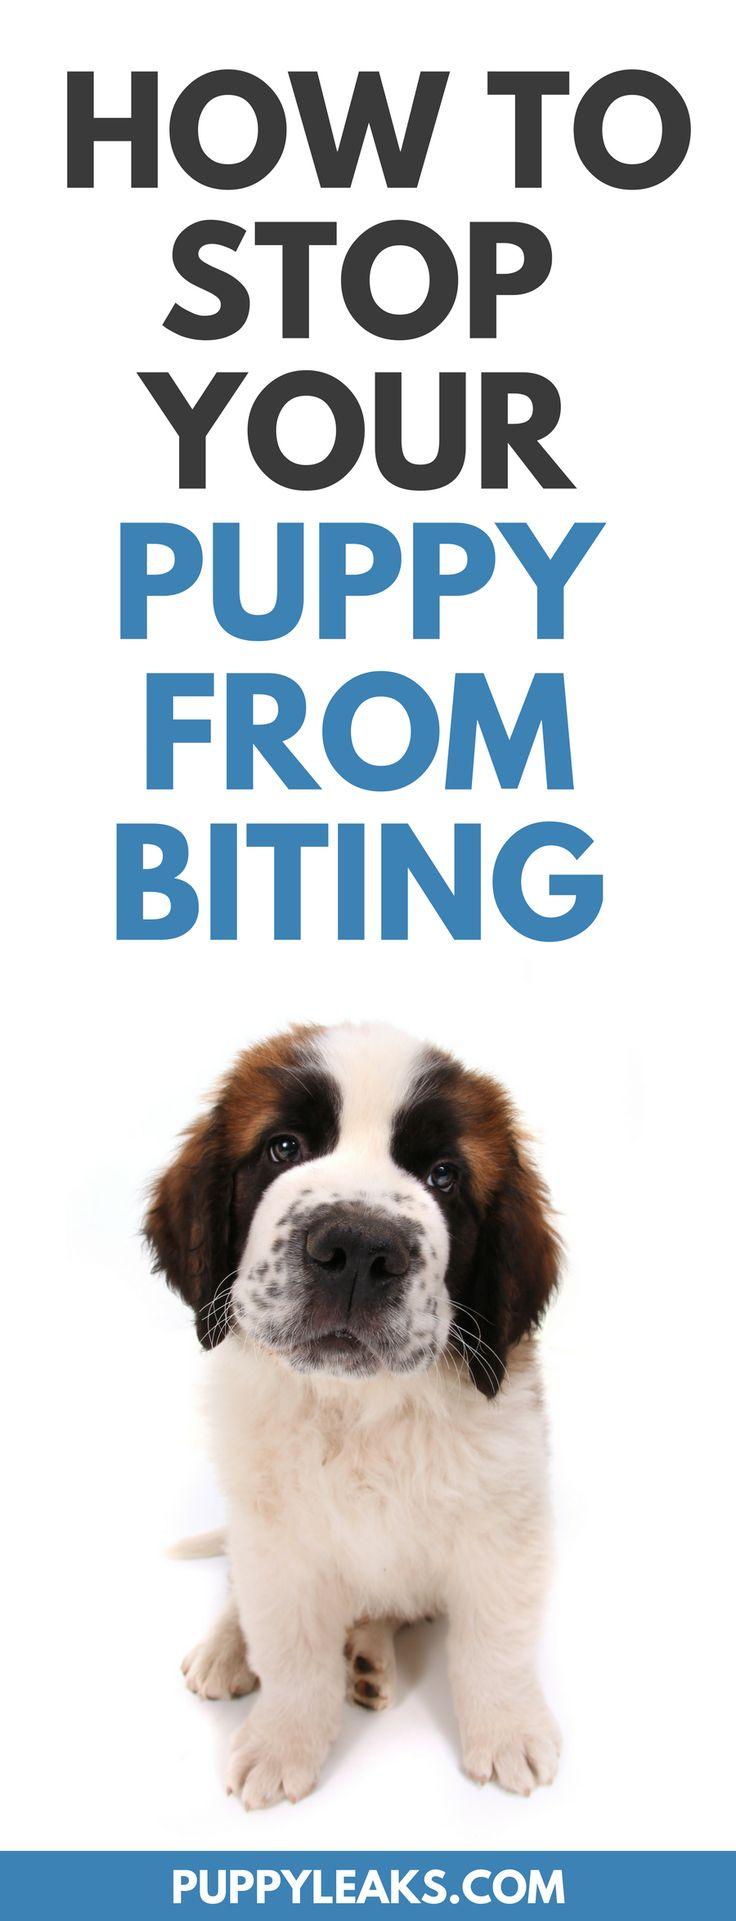 Does your puppy bite and nip at your hands? Do they grab onto your clothing and refuse to let go? Teaching bite inhibition to a pup is no fun, but there are some methods that work. Here's 3 tips for teaching your puppy to stop biting. #puppy #puppytraining #dogs #dogtraining #dogtips #dogcare #dogadvice